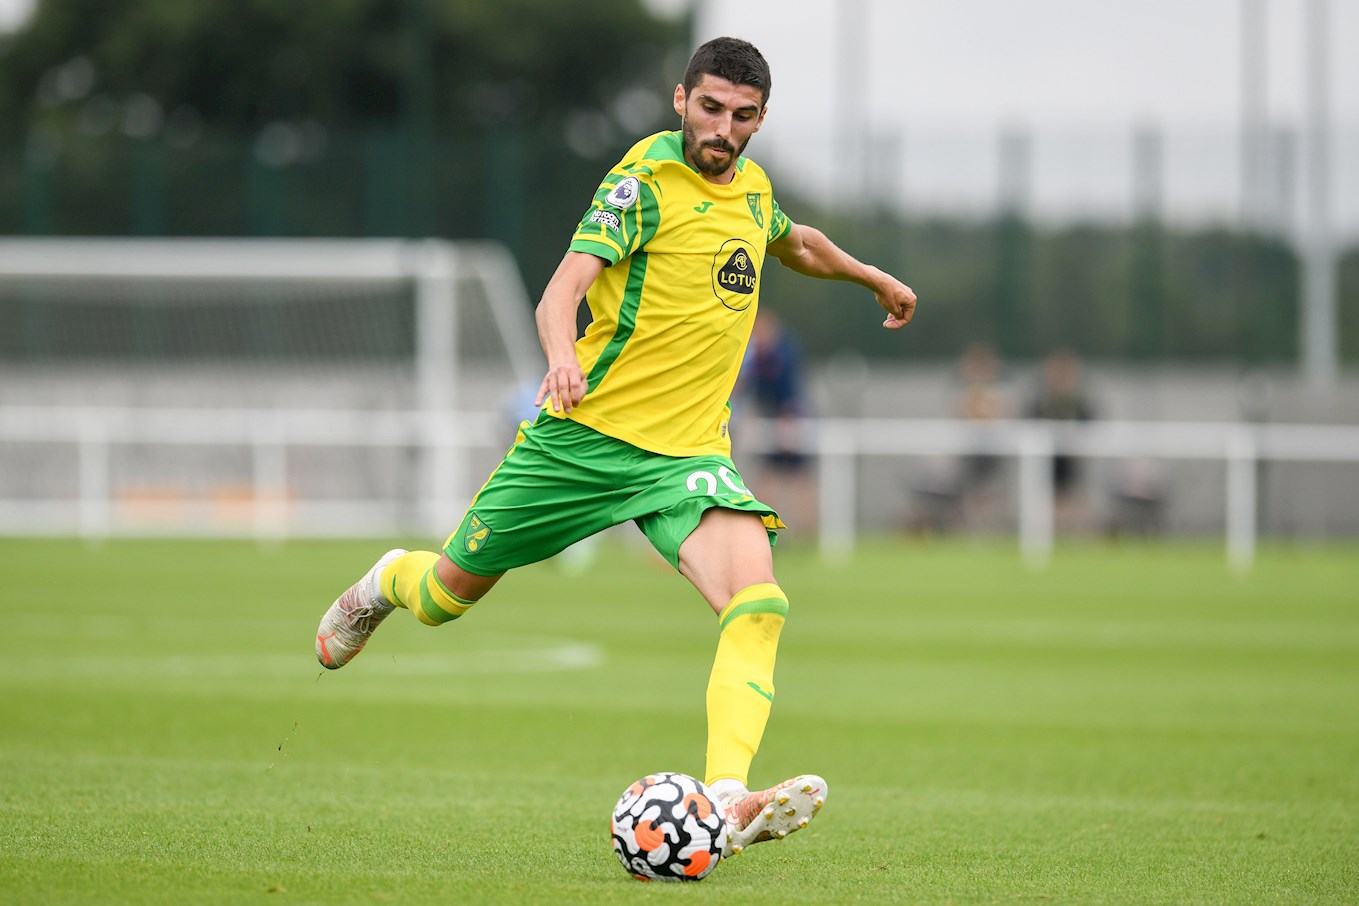 match-preview-coventry-city-v-norwich-city